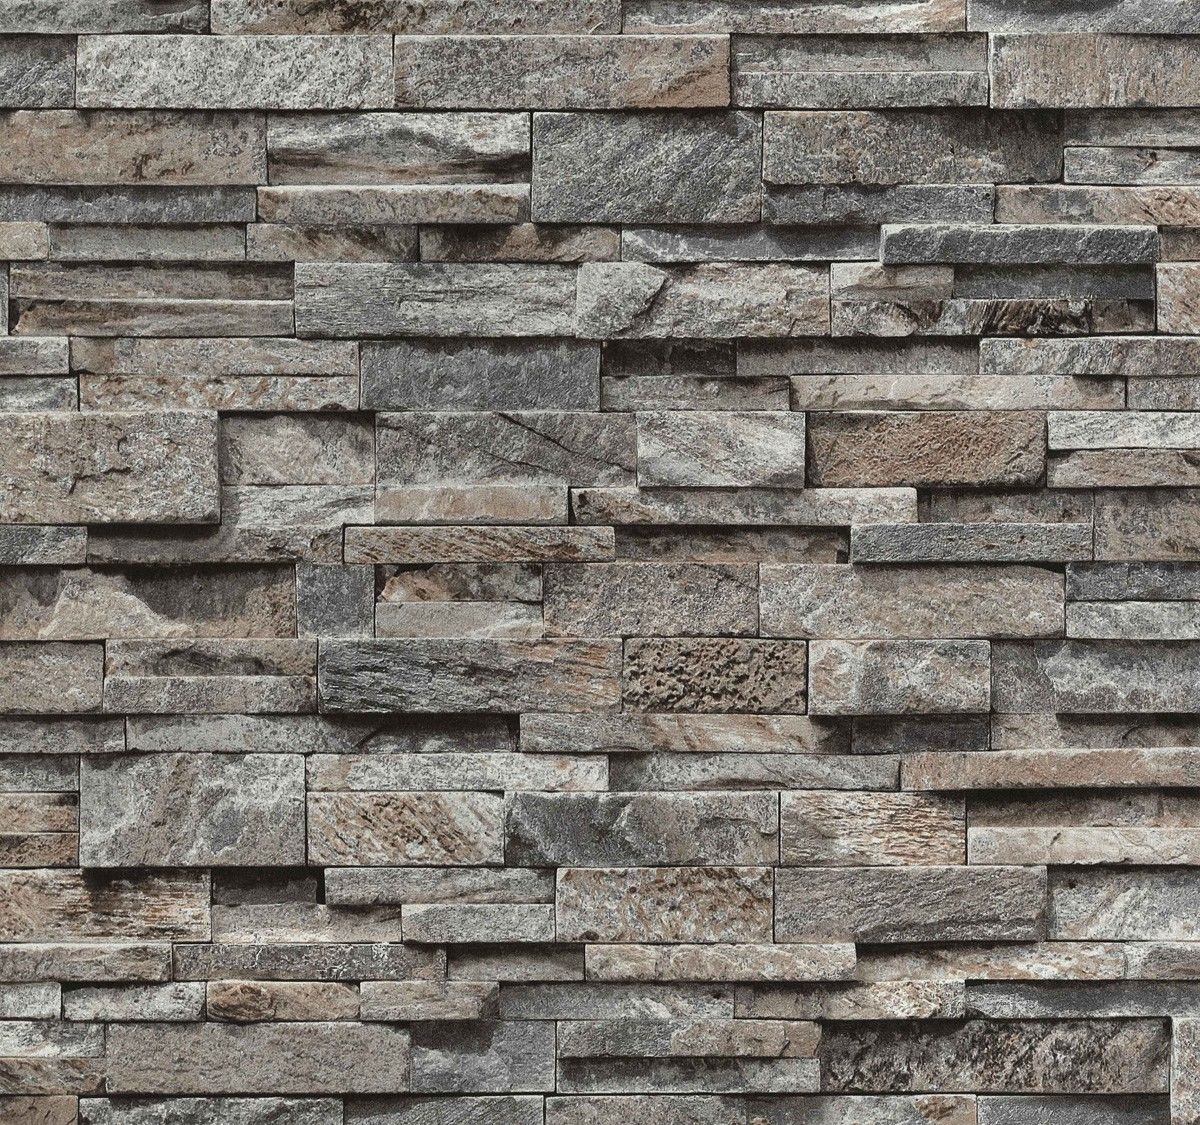 Brick effect wallpaper vinyl 3d slate stone split face for 3d effect wallpaper uk